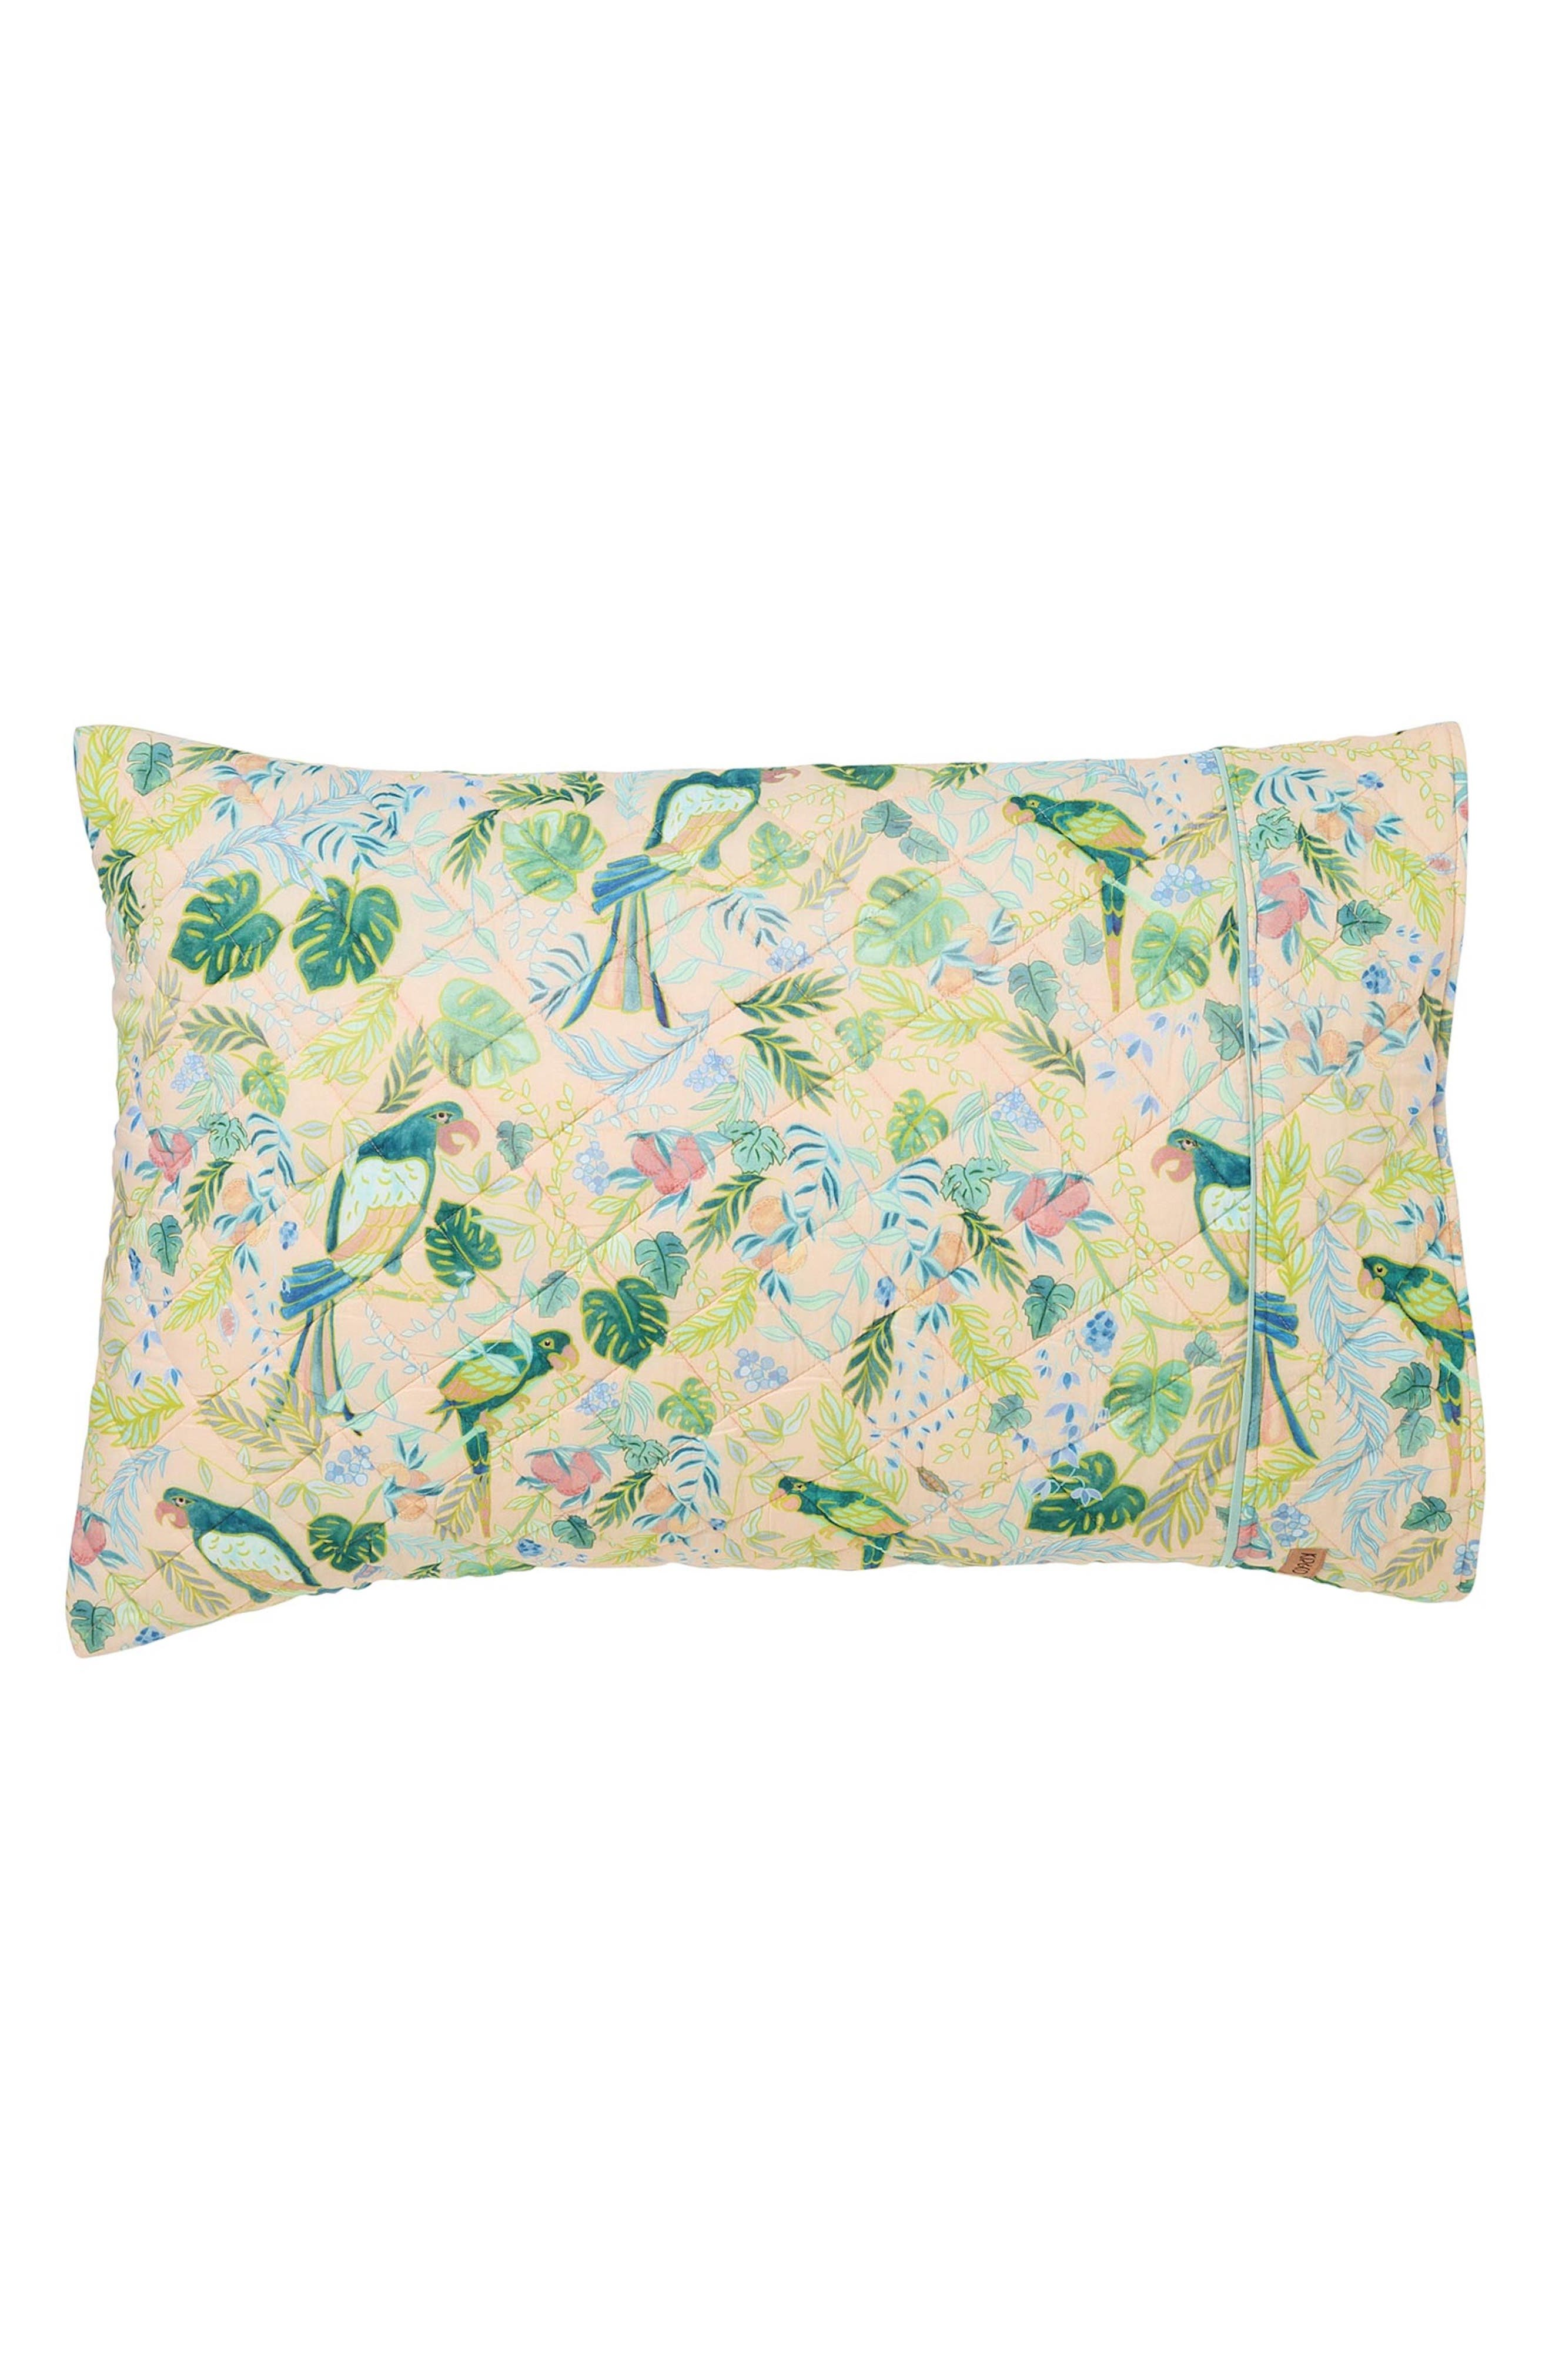 Kip & Co Birds of Paradise Quilted Cotton Pillowcase (Kids)